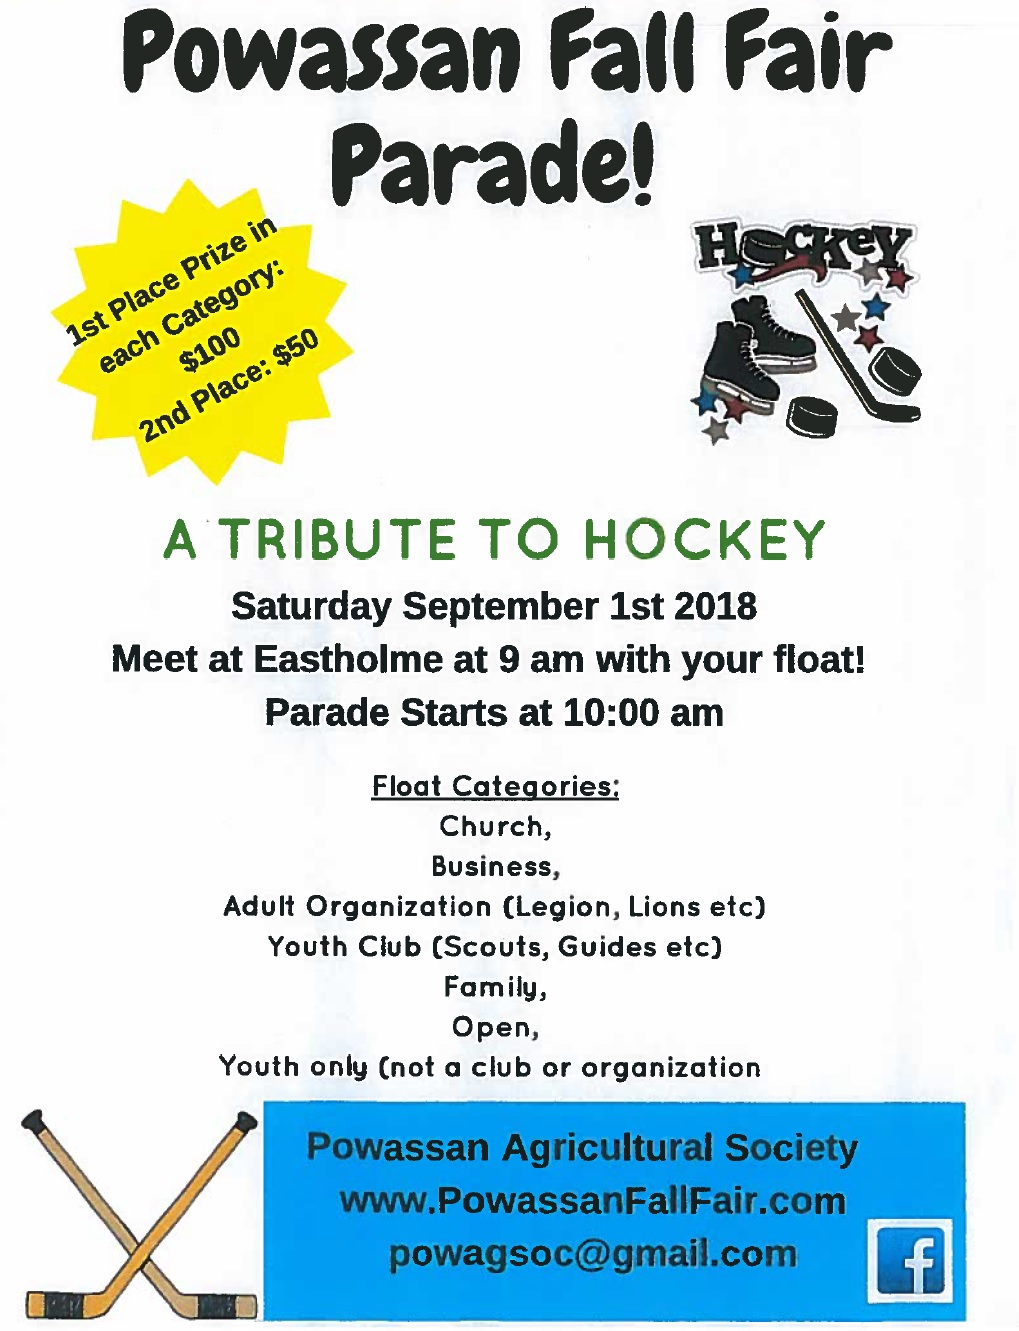 Powassan Fall Fair Parade: Sat. Sept. 1st 2018, 10:00 am. Meet at Eastholme at 9am with your float!